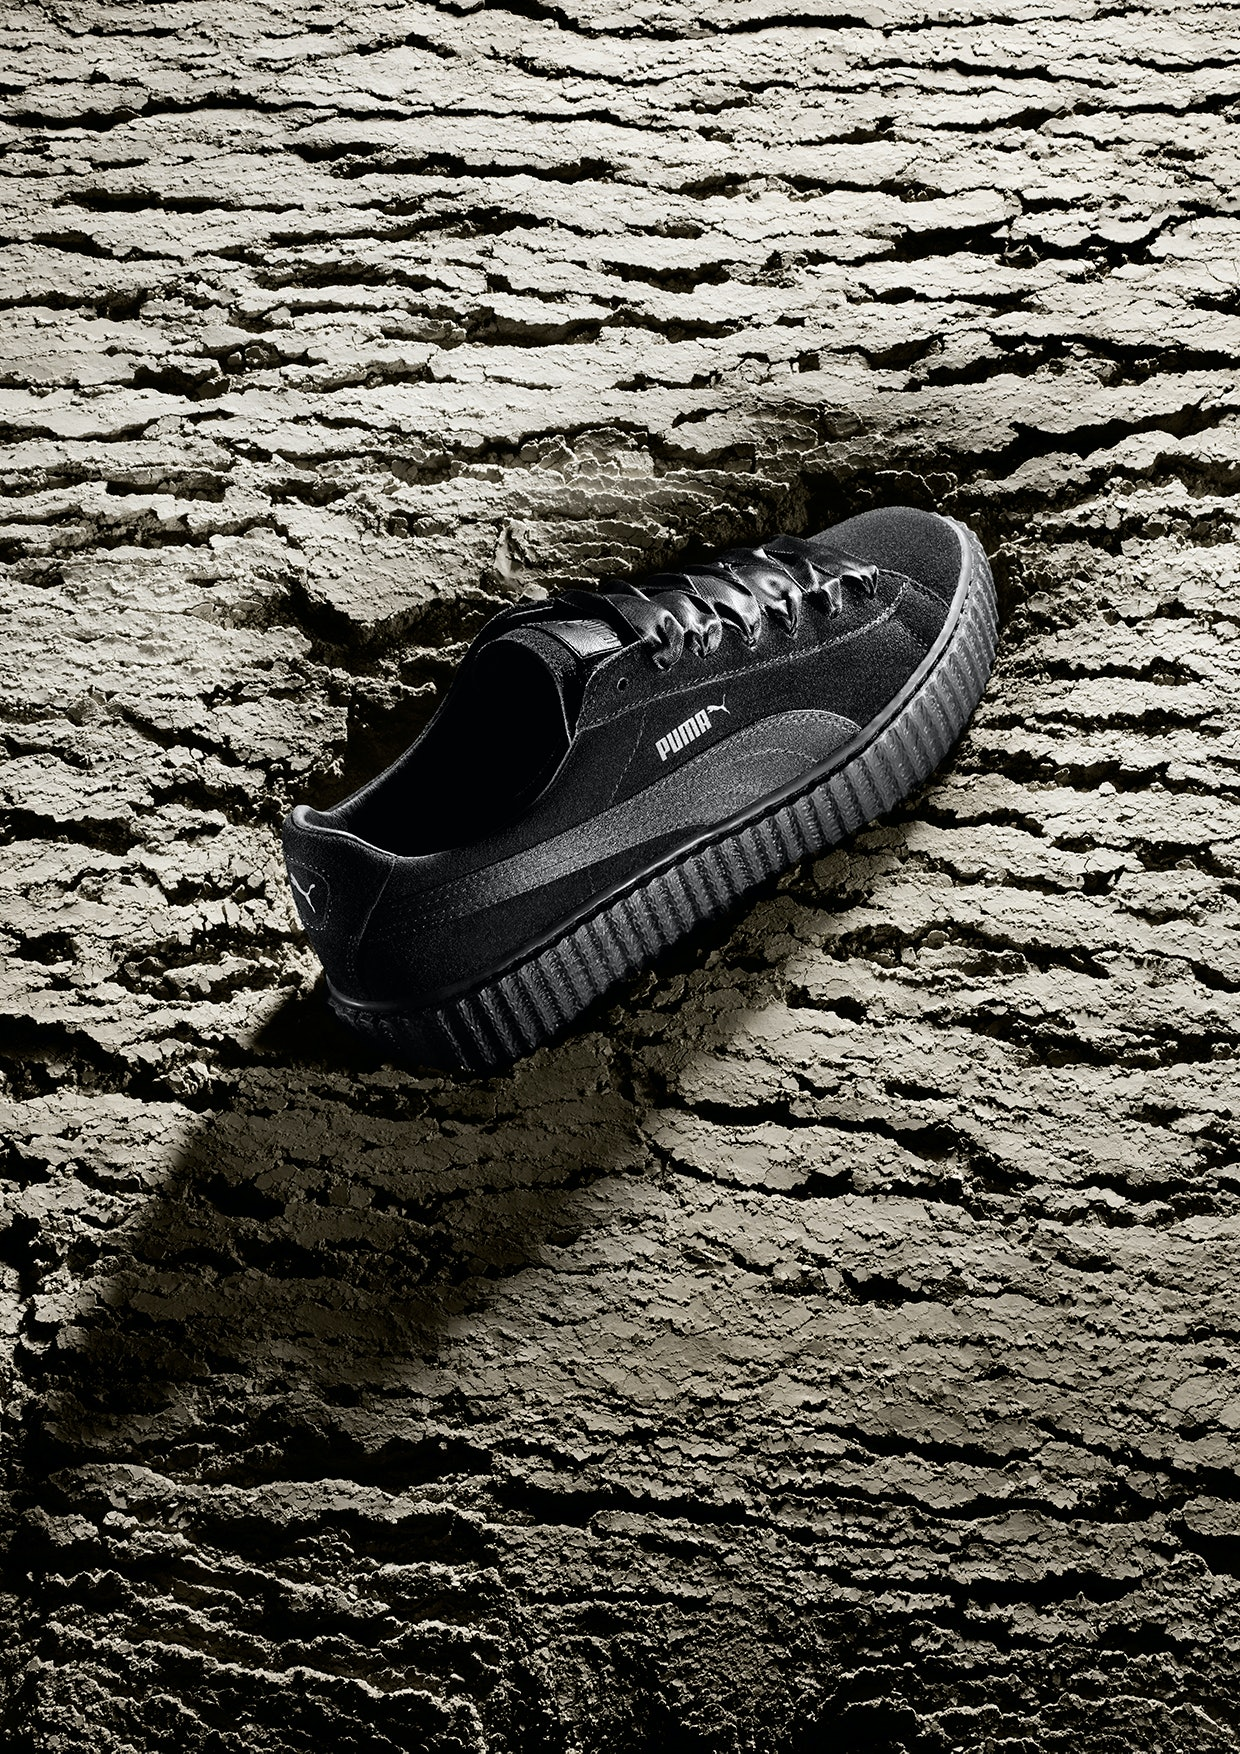 f730dcf8b2b 14 Rihanna x Puma Creepers Twitter Reactions That Demonstrate The Emotional  Roller Coaster Of Trying To Shop